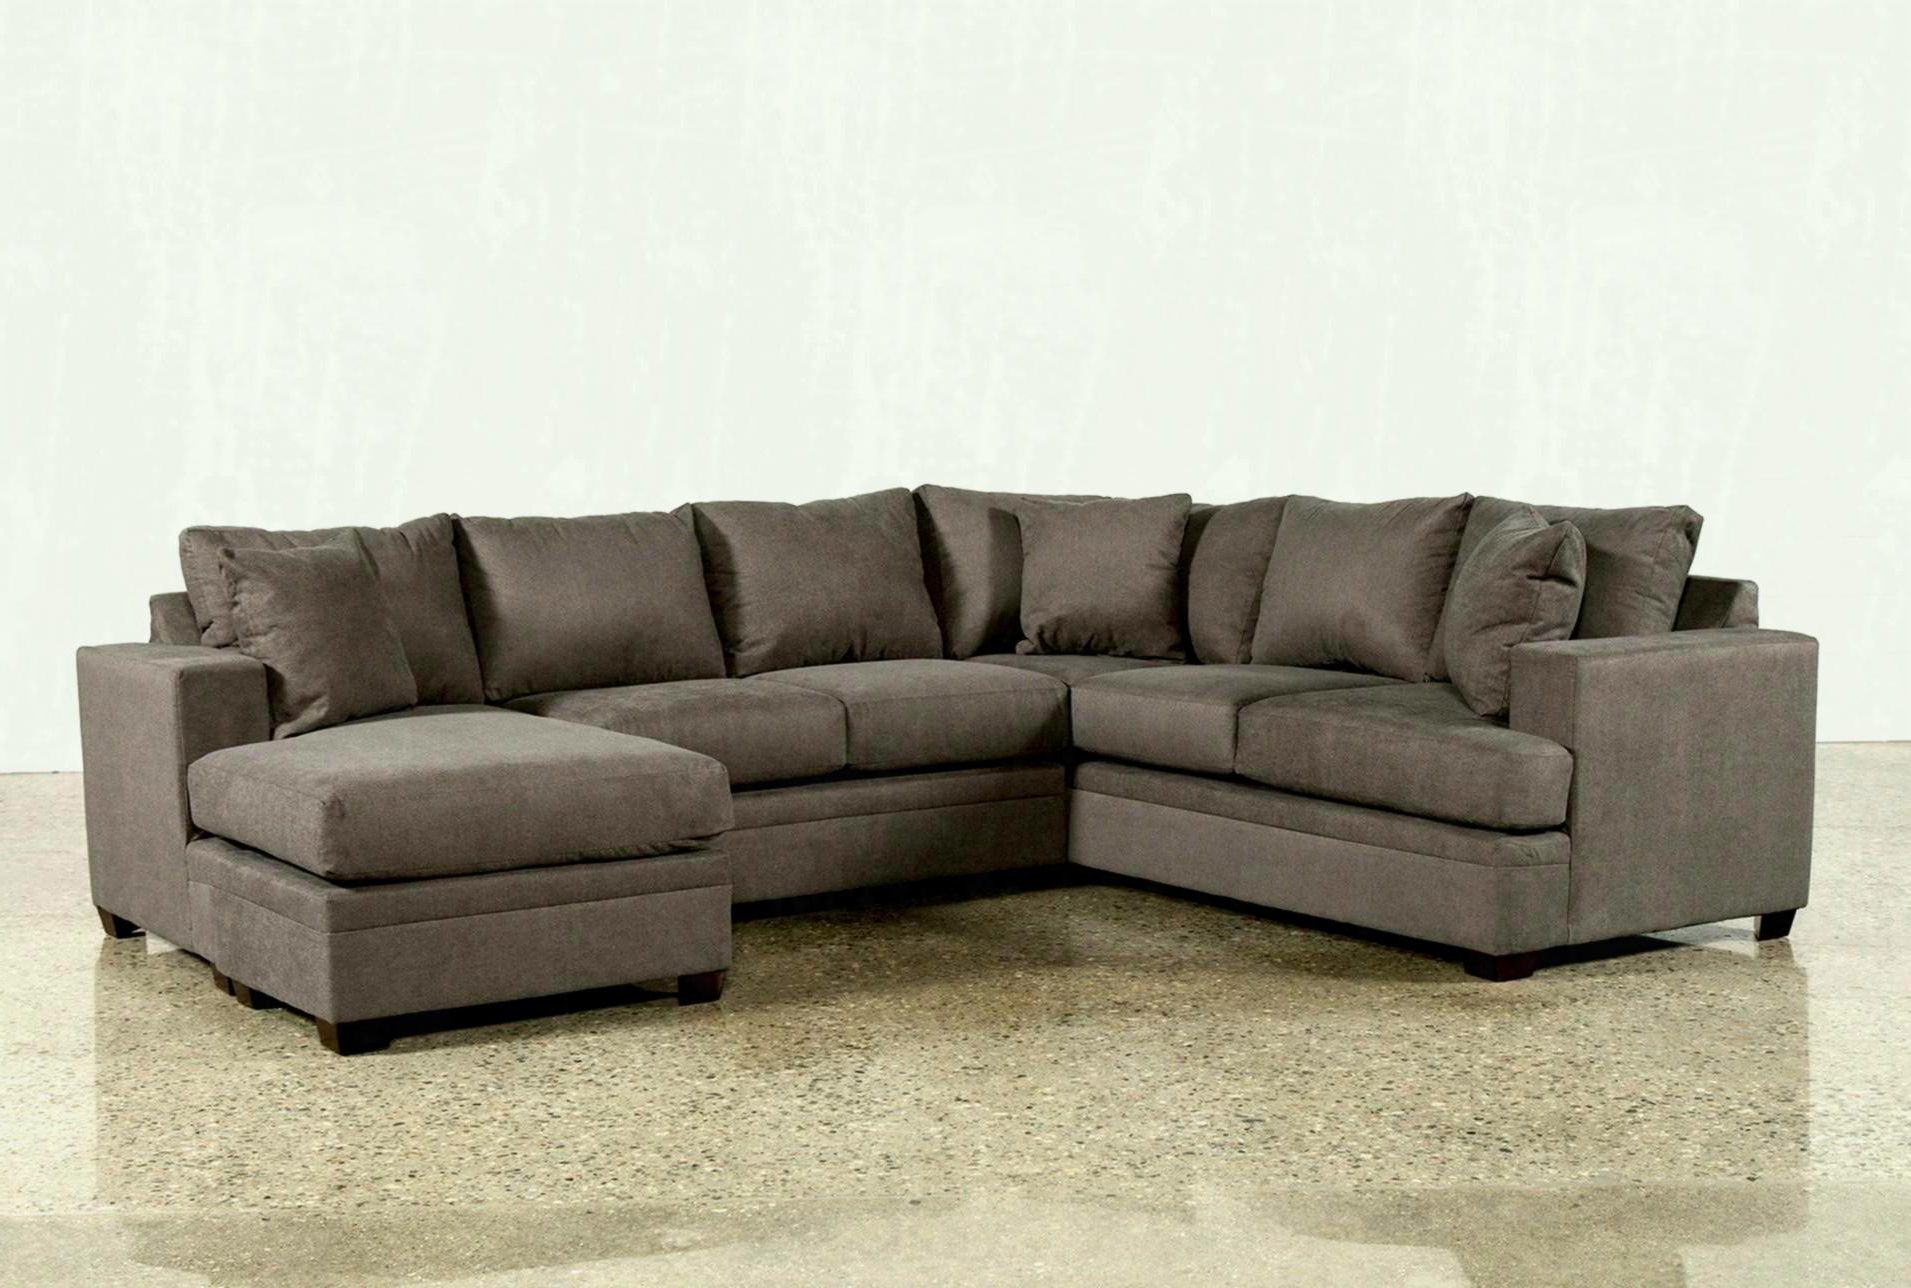 Aquarius Dark Grey 2 Piece Sectionals With Raf Chaise For Recent Added To Cart Aquarius Light Grey Piece Sectional W Raf Chaise (Gallery 6 of 20)